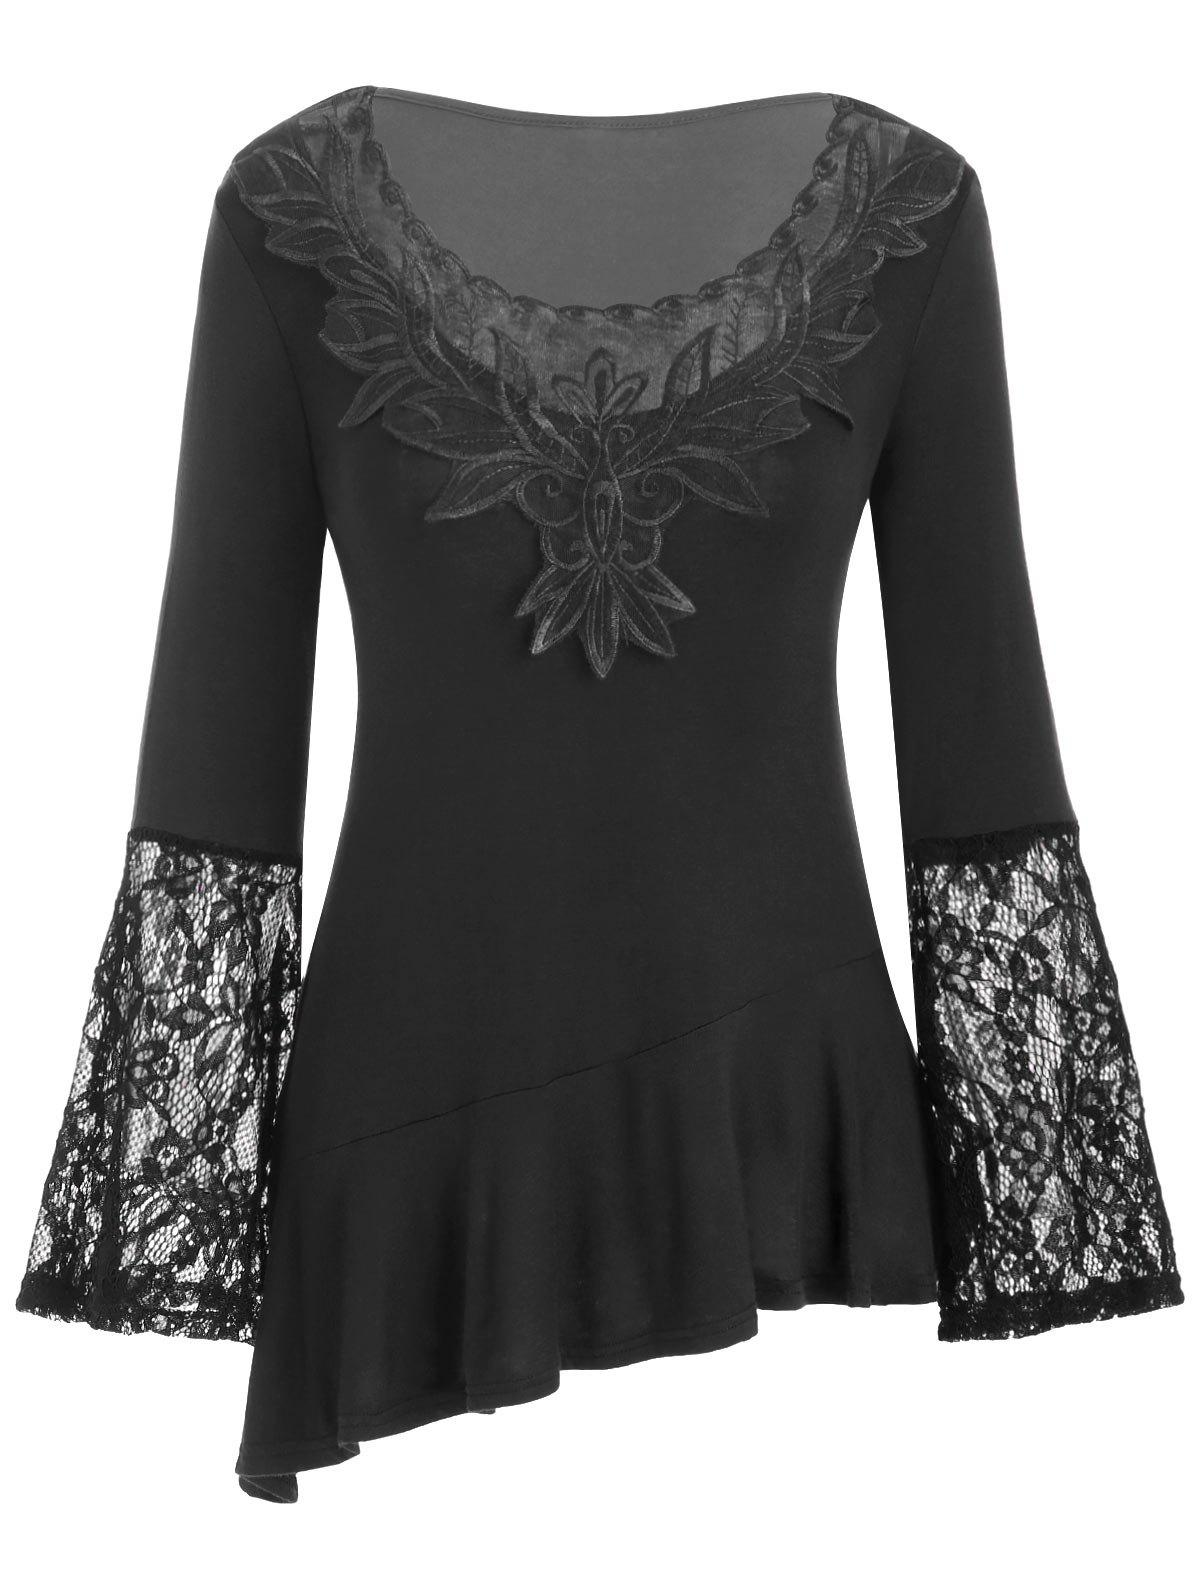 Chic Mesh Embroidery Lace Panel Flounce Long Sleeve Tee